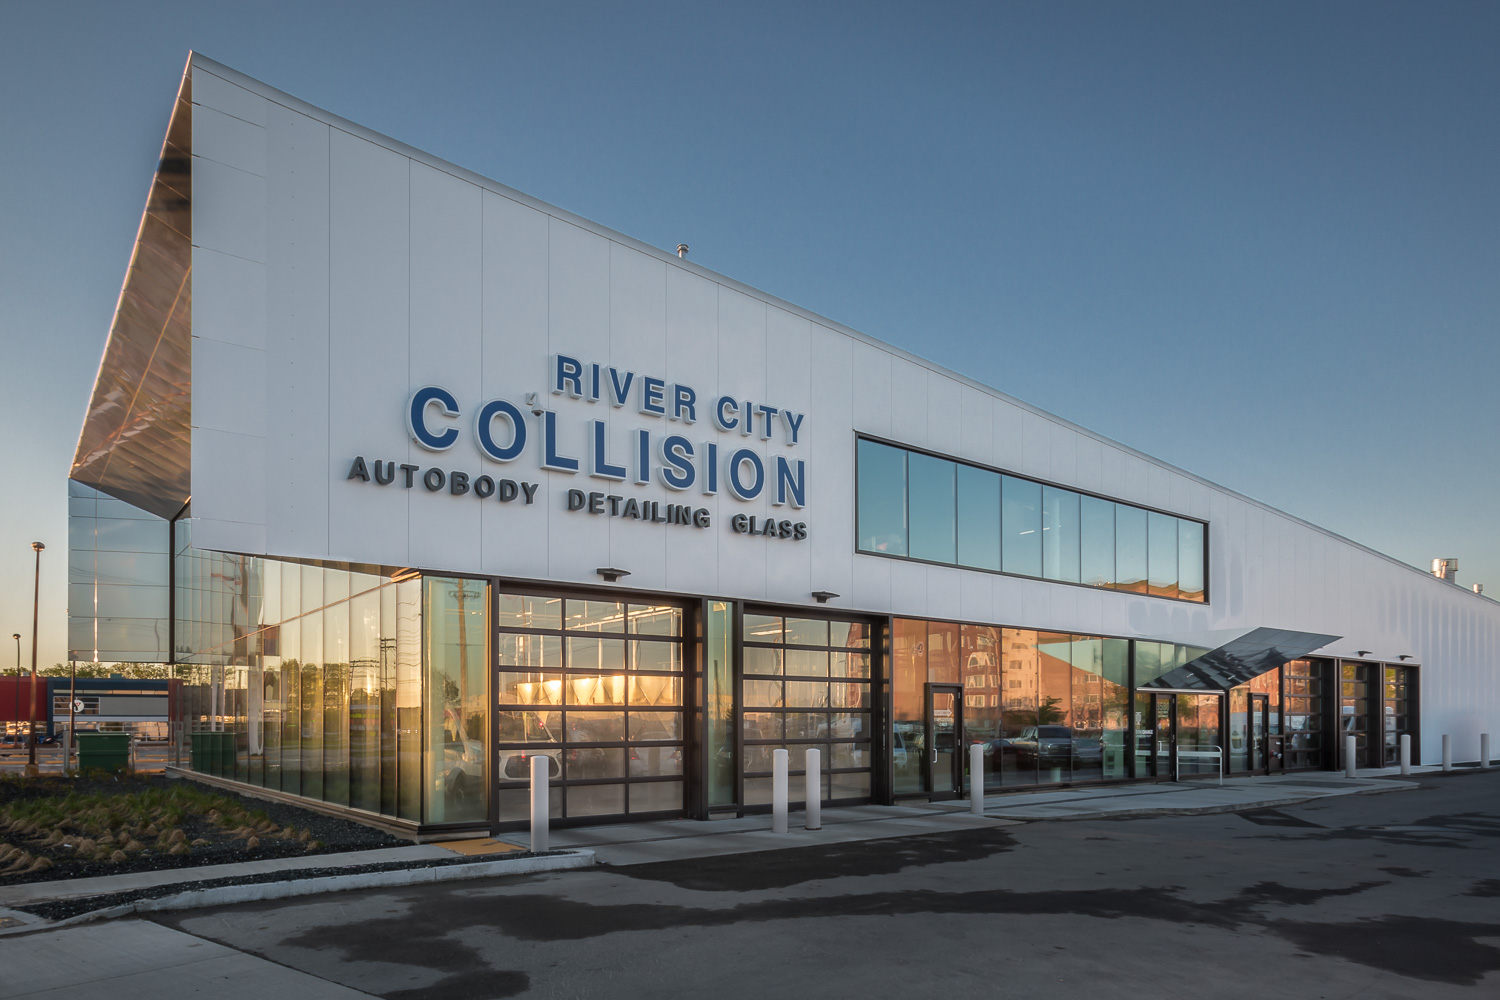 River City Collision Autobody